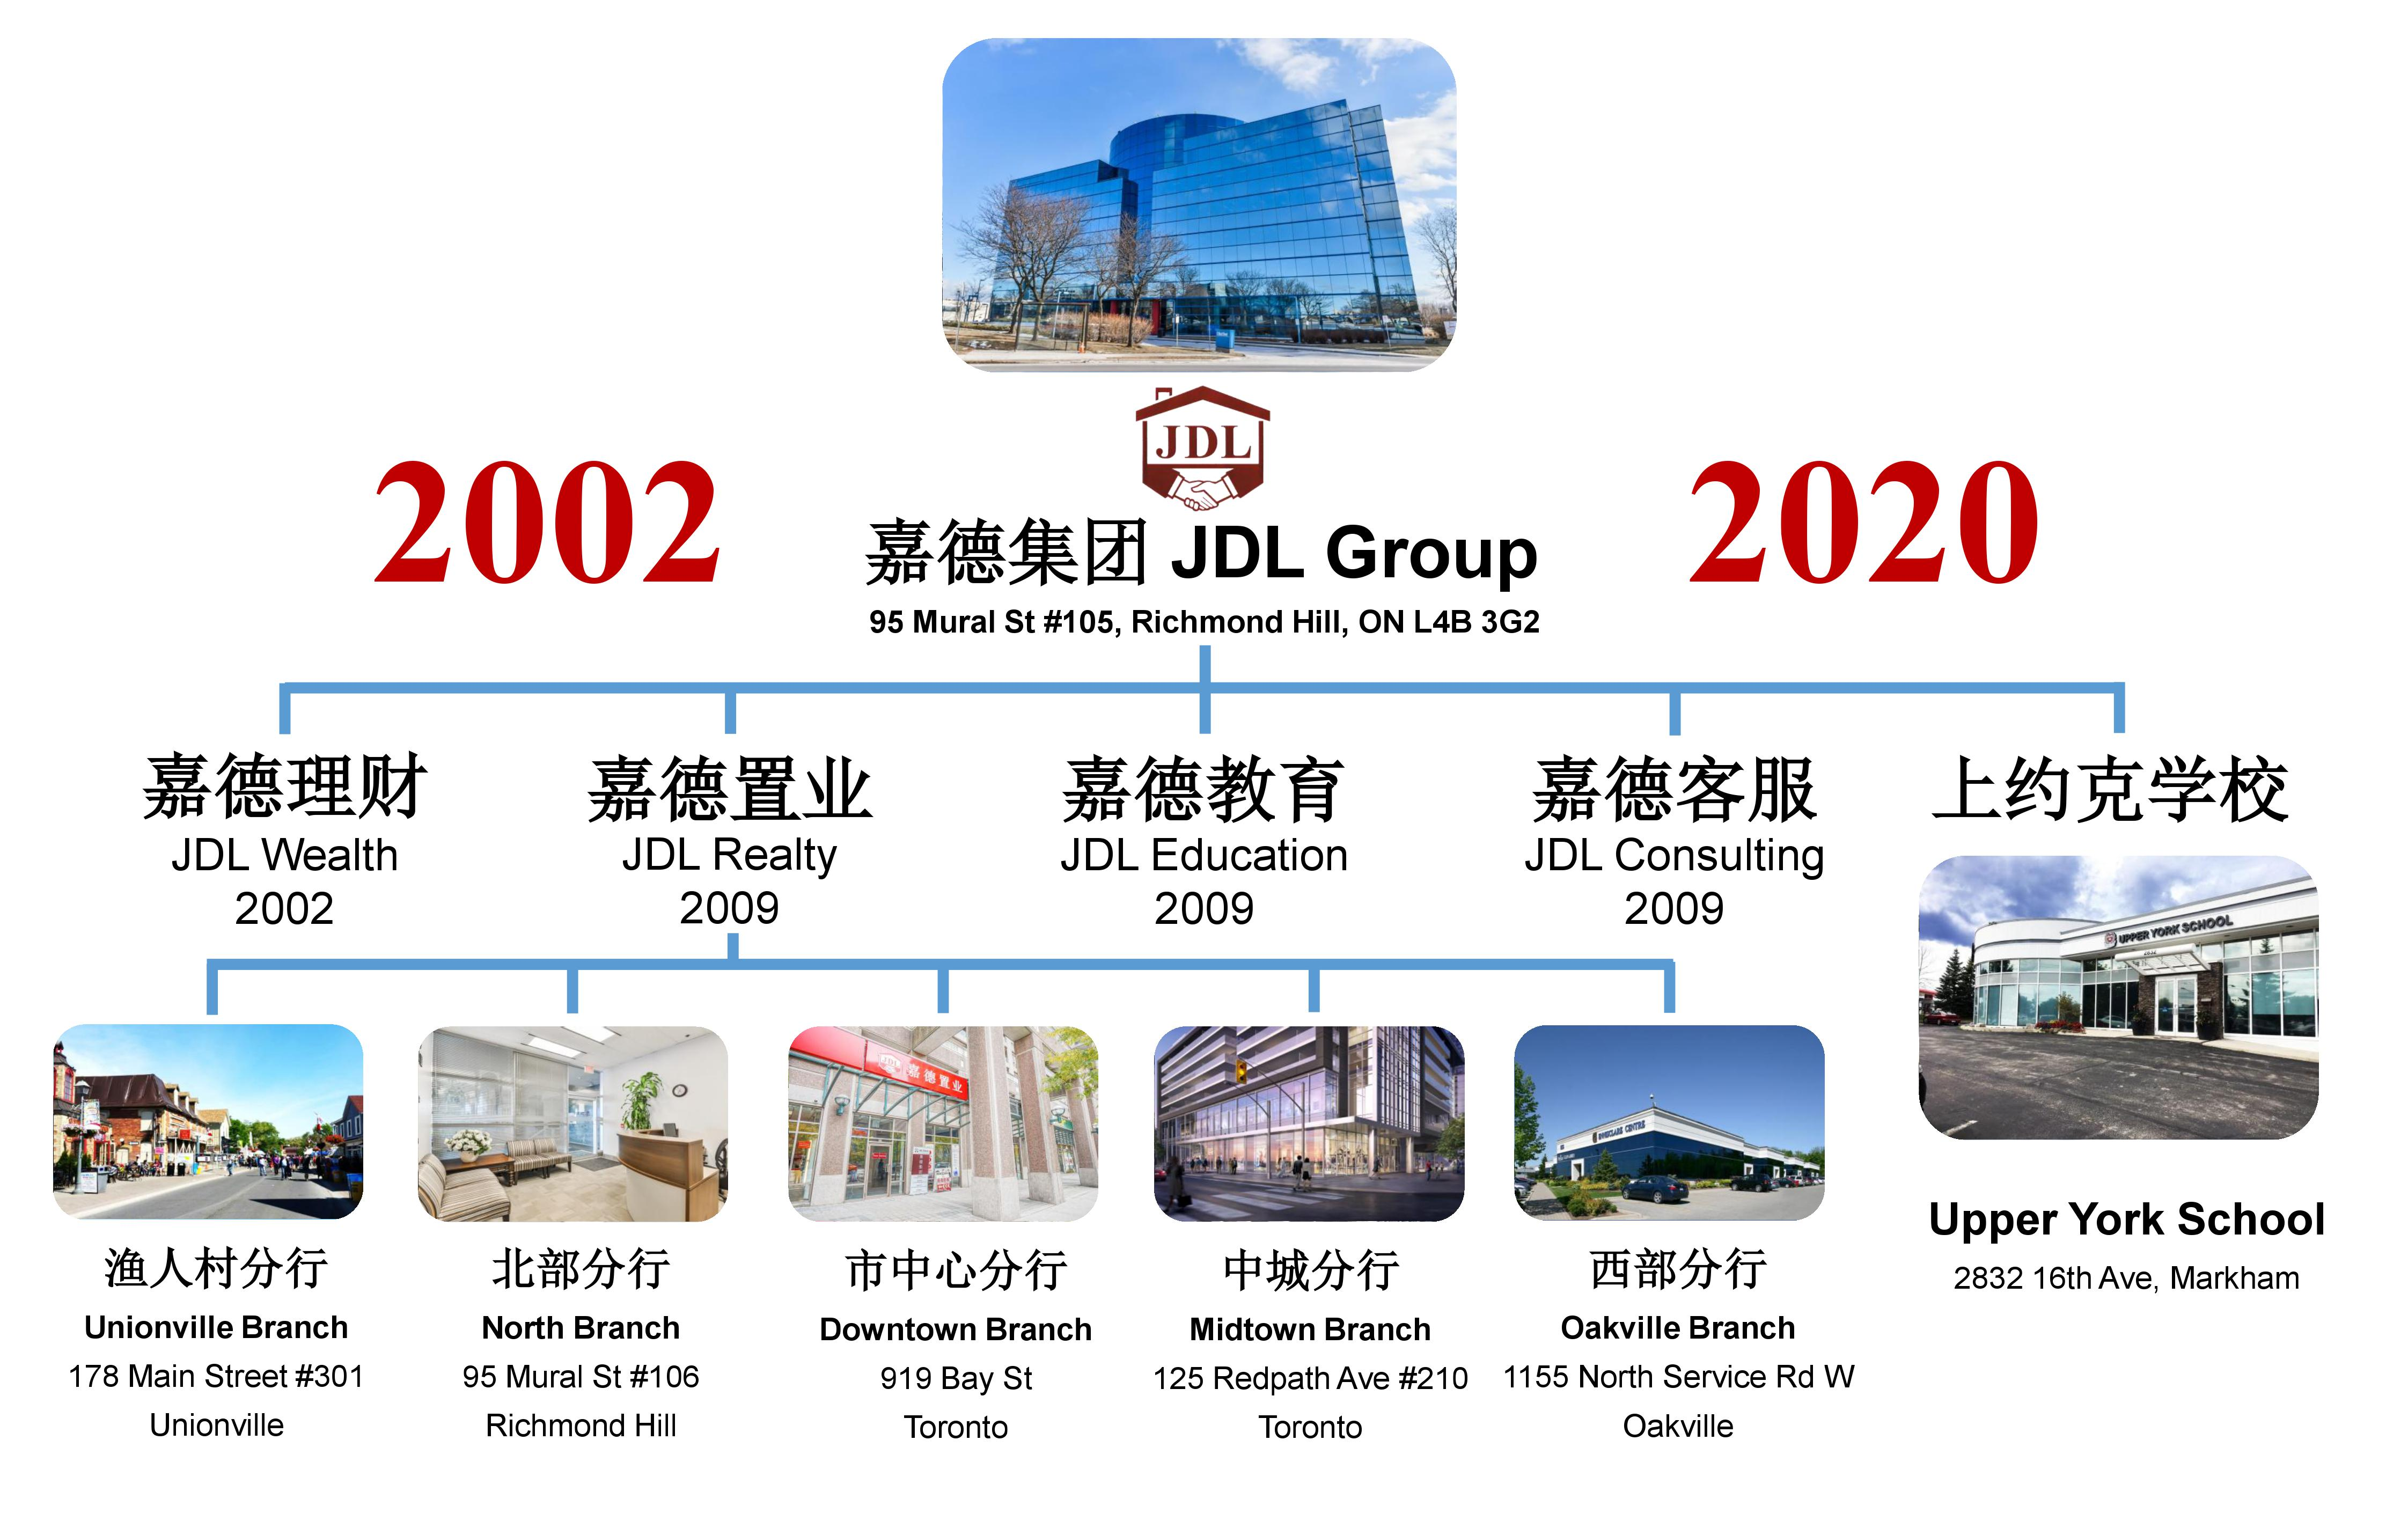 2020 JDL Group Photp